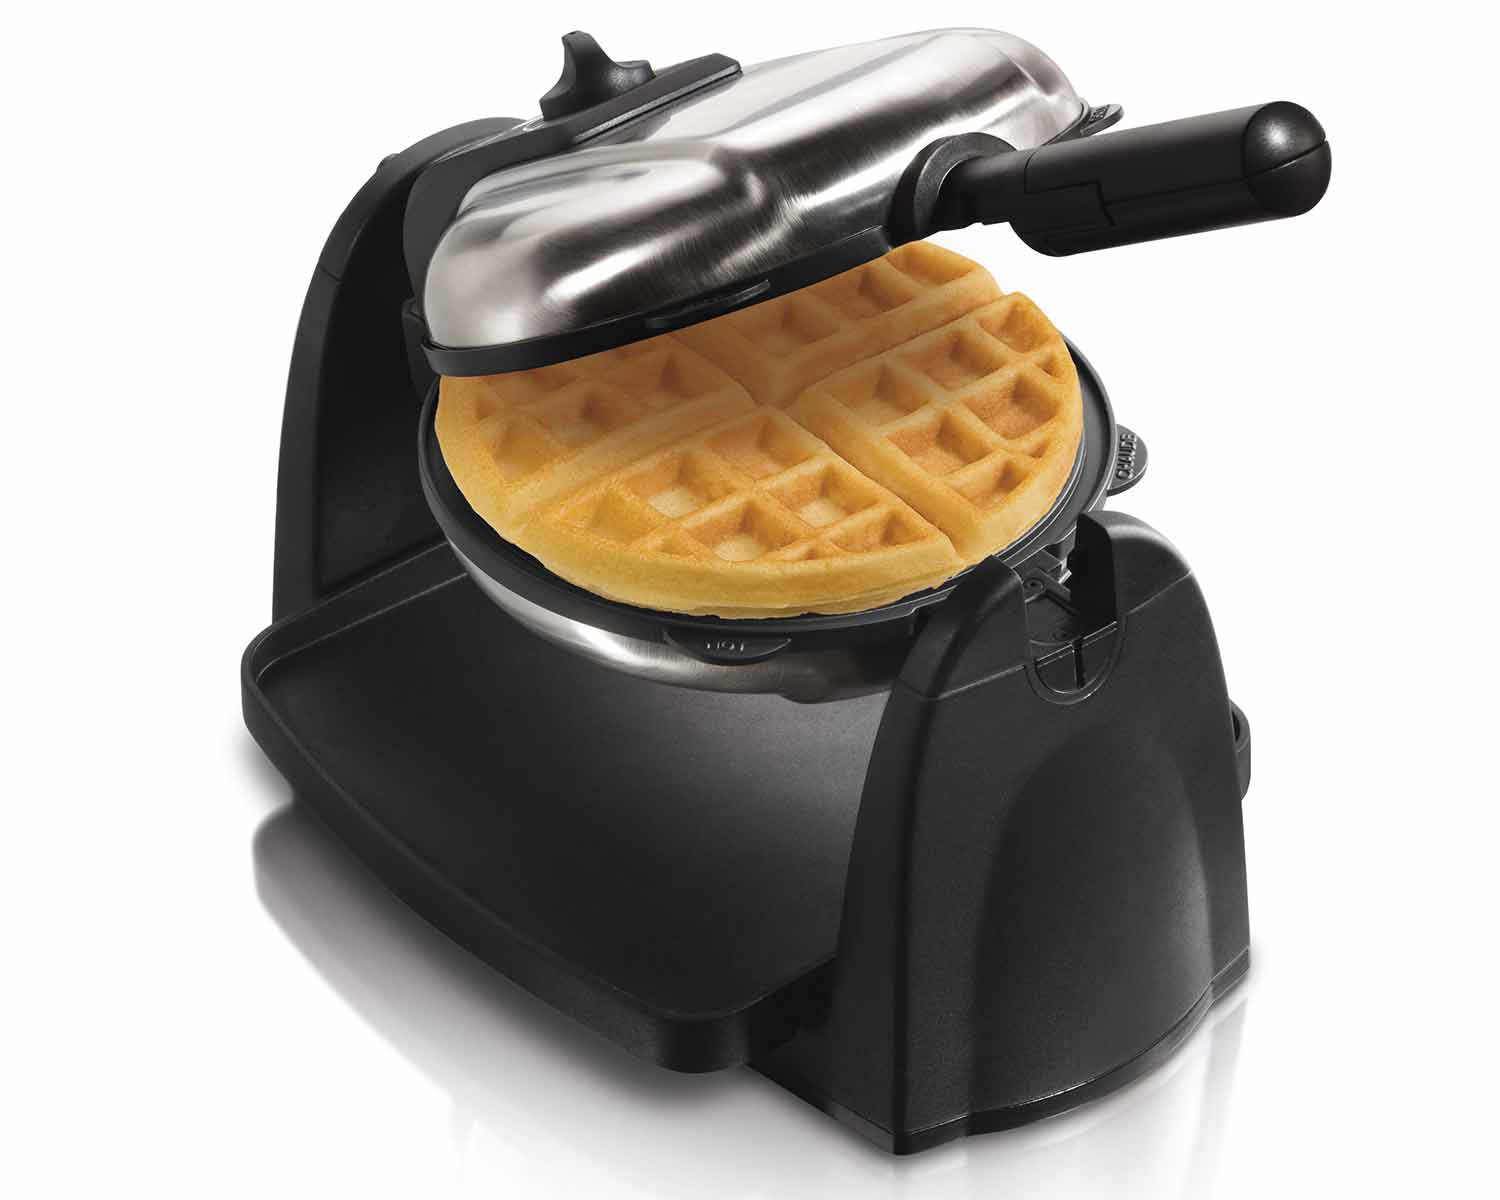 Flip Belgian Waffle Baker with Removable Grids (26030C)